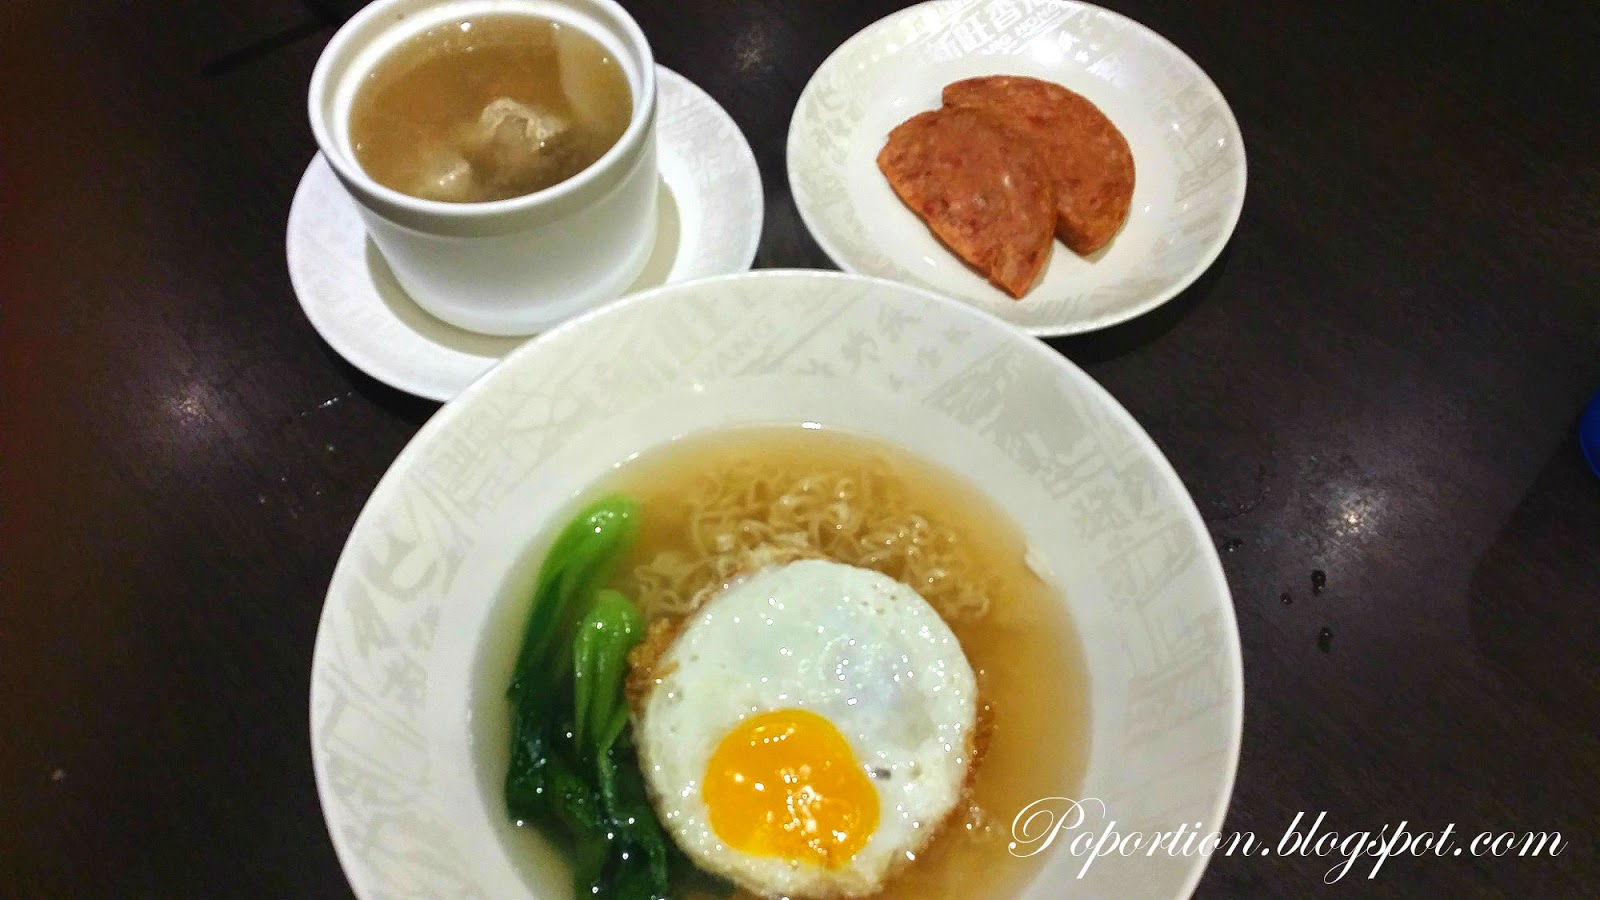 noodles with egg and luncheon meat soup